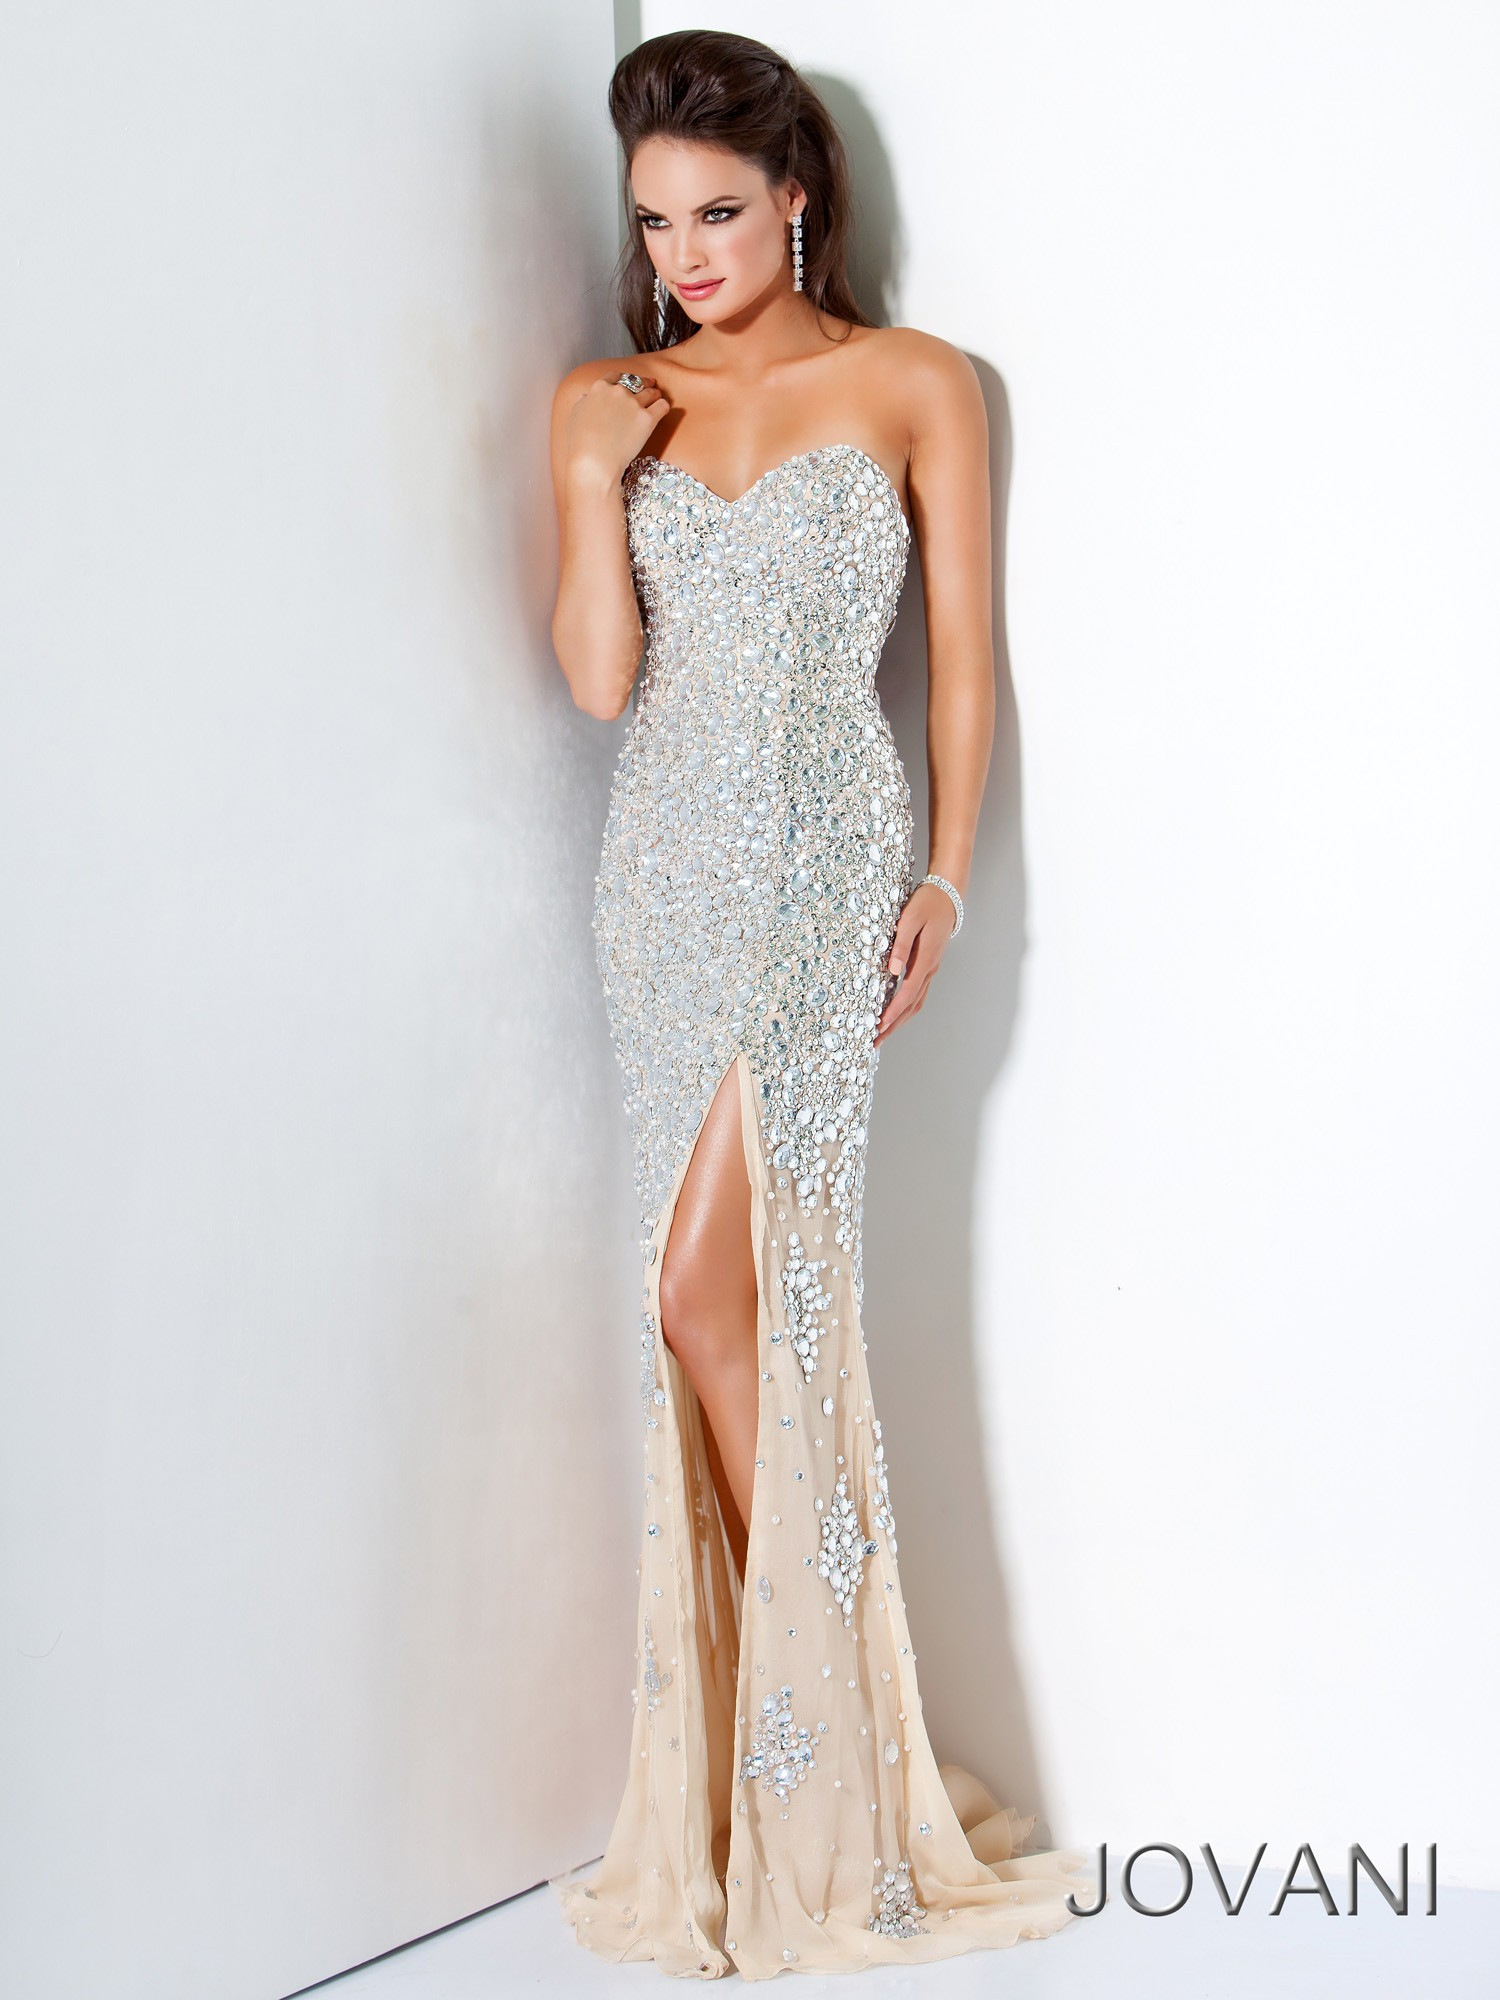 4247 - Silver Nude Beaded Strapless Dress - RissyRoos.com